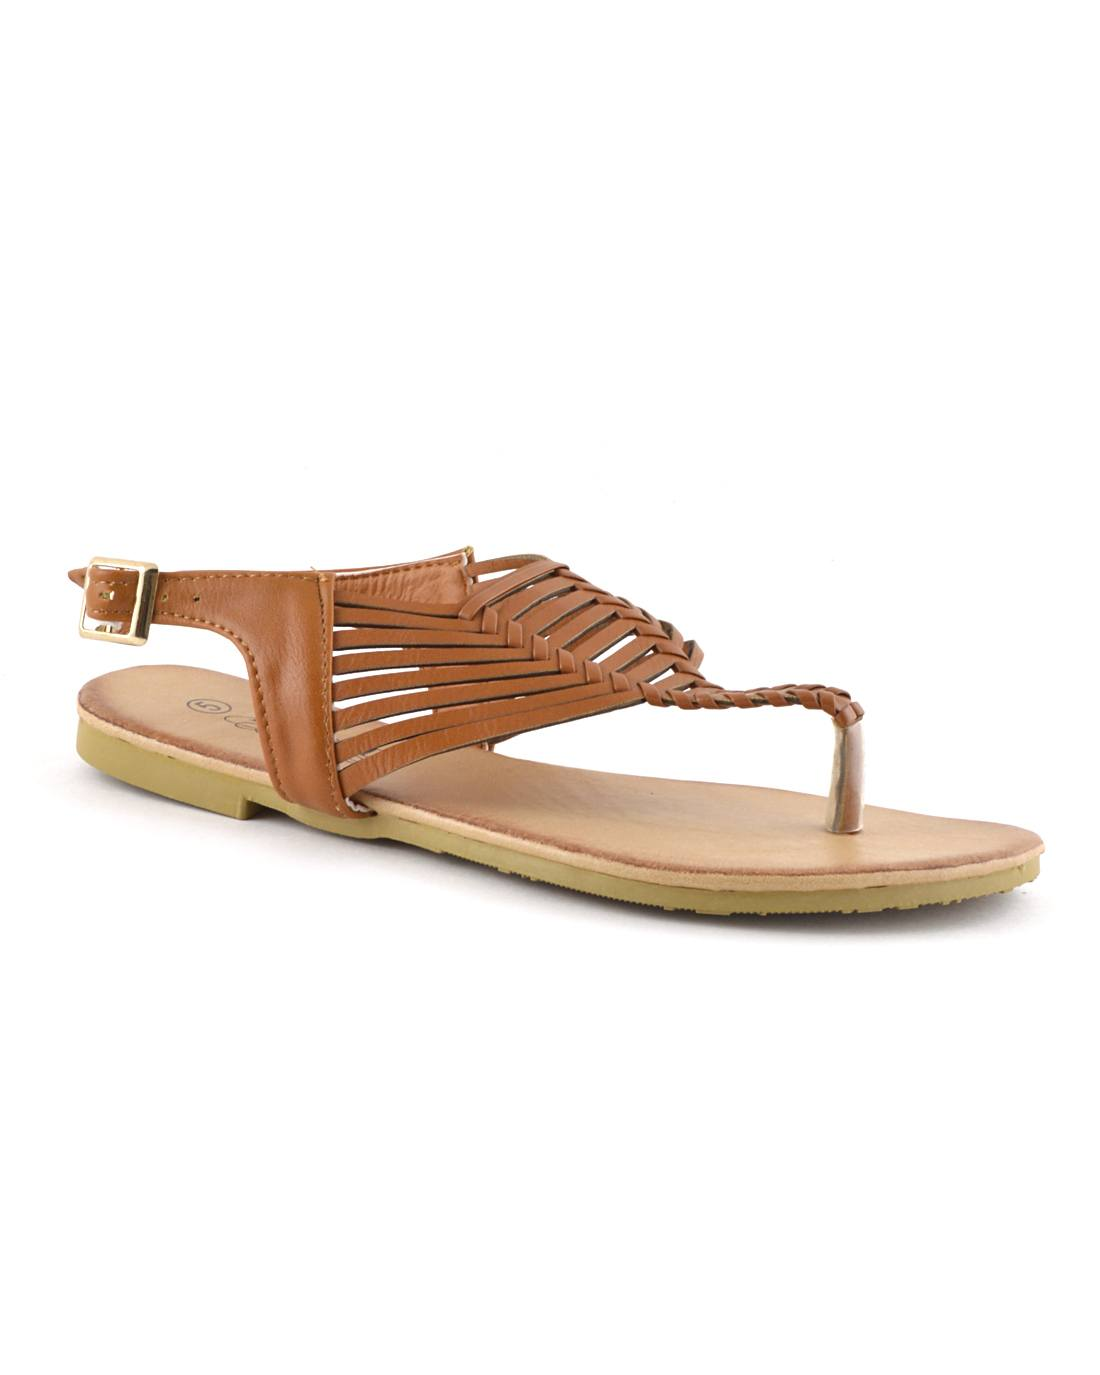 Chic open-toe thong sandal features basket-weave design-5-MY UPSCALE STORE